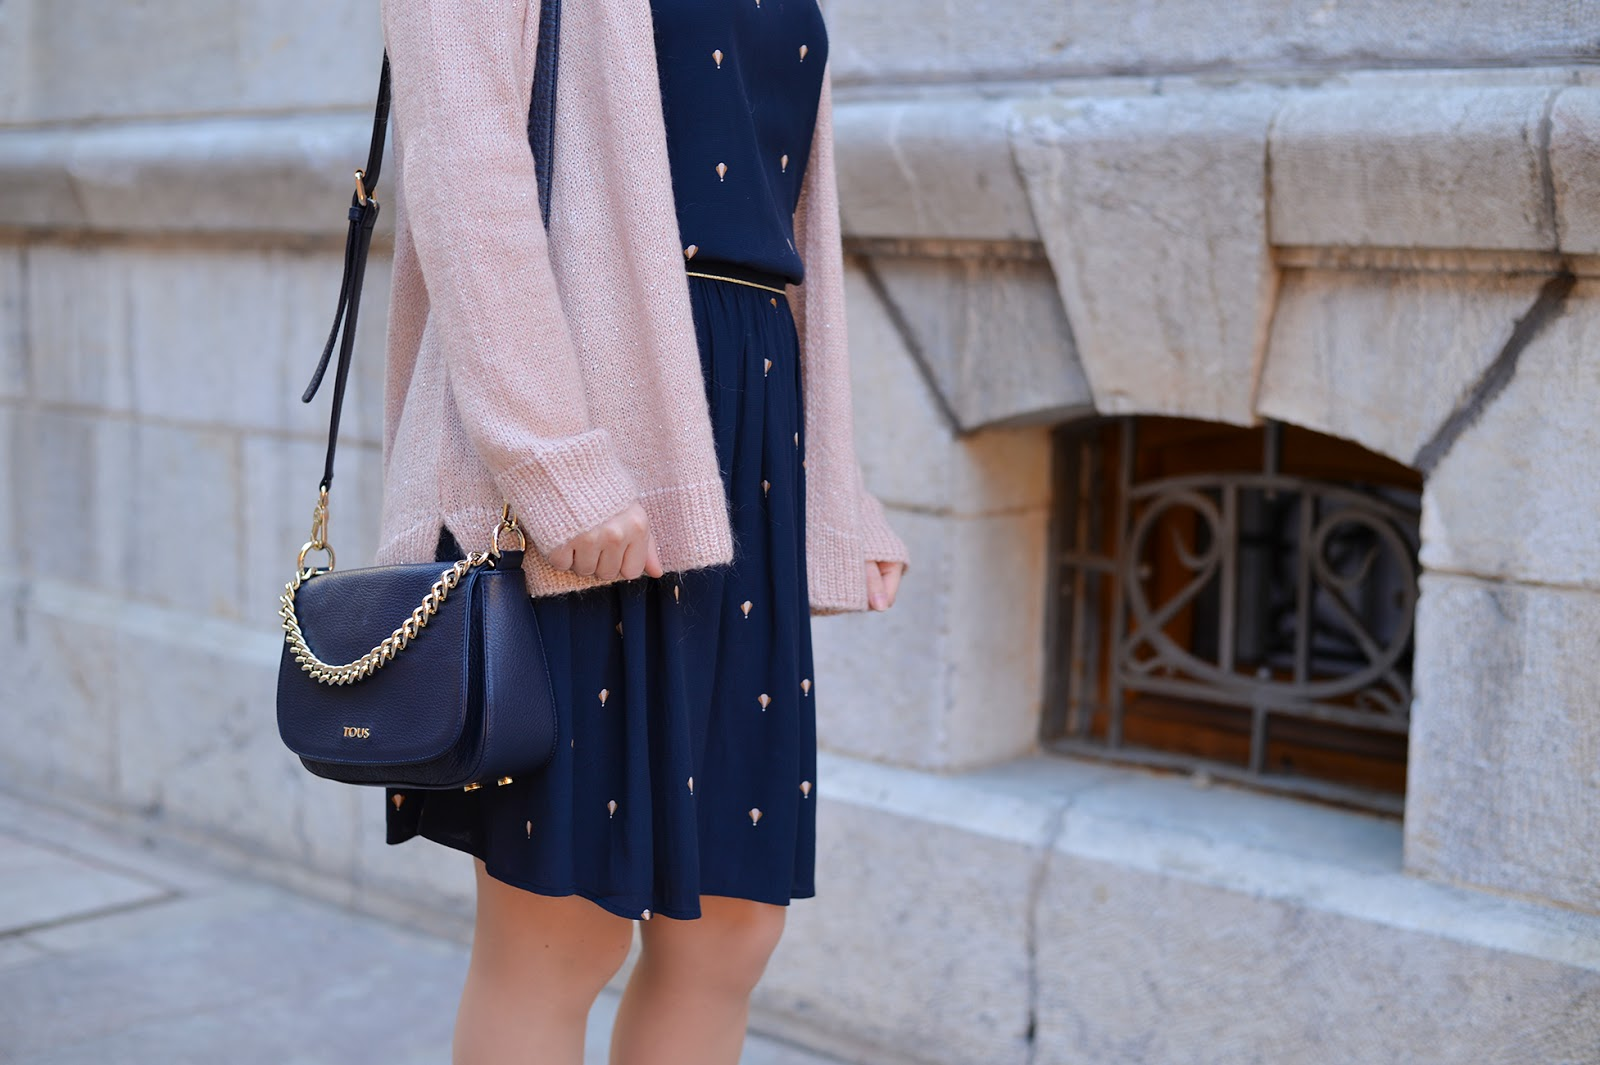 tous bag two piece outfit top skirt set fashion blogger